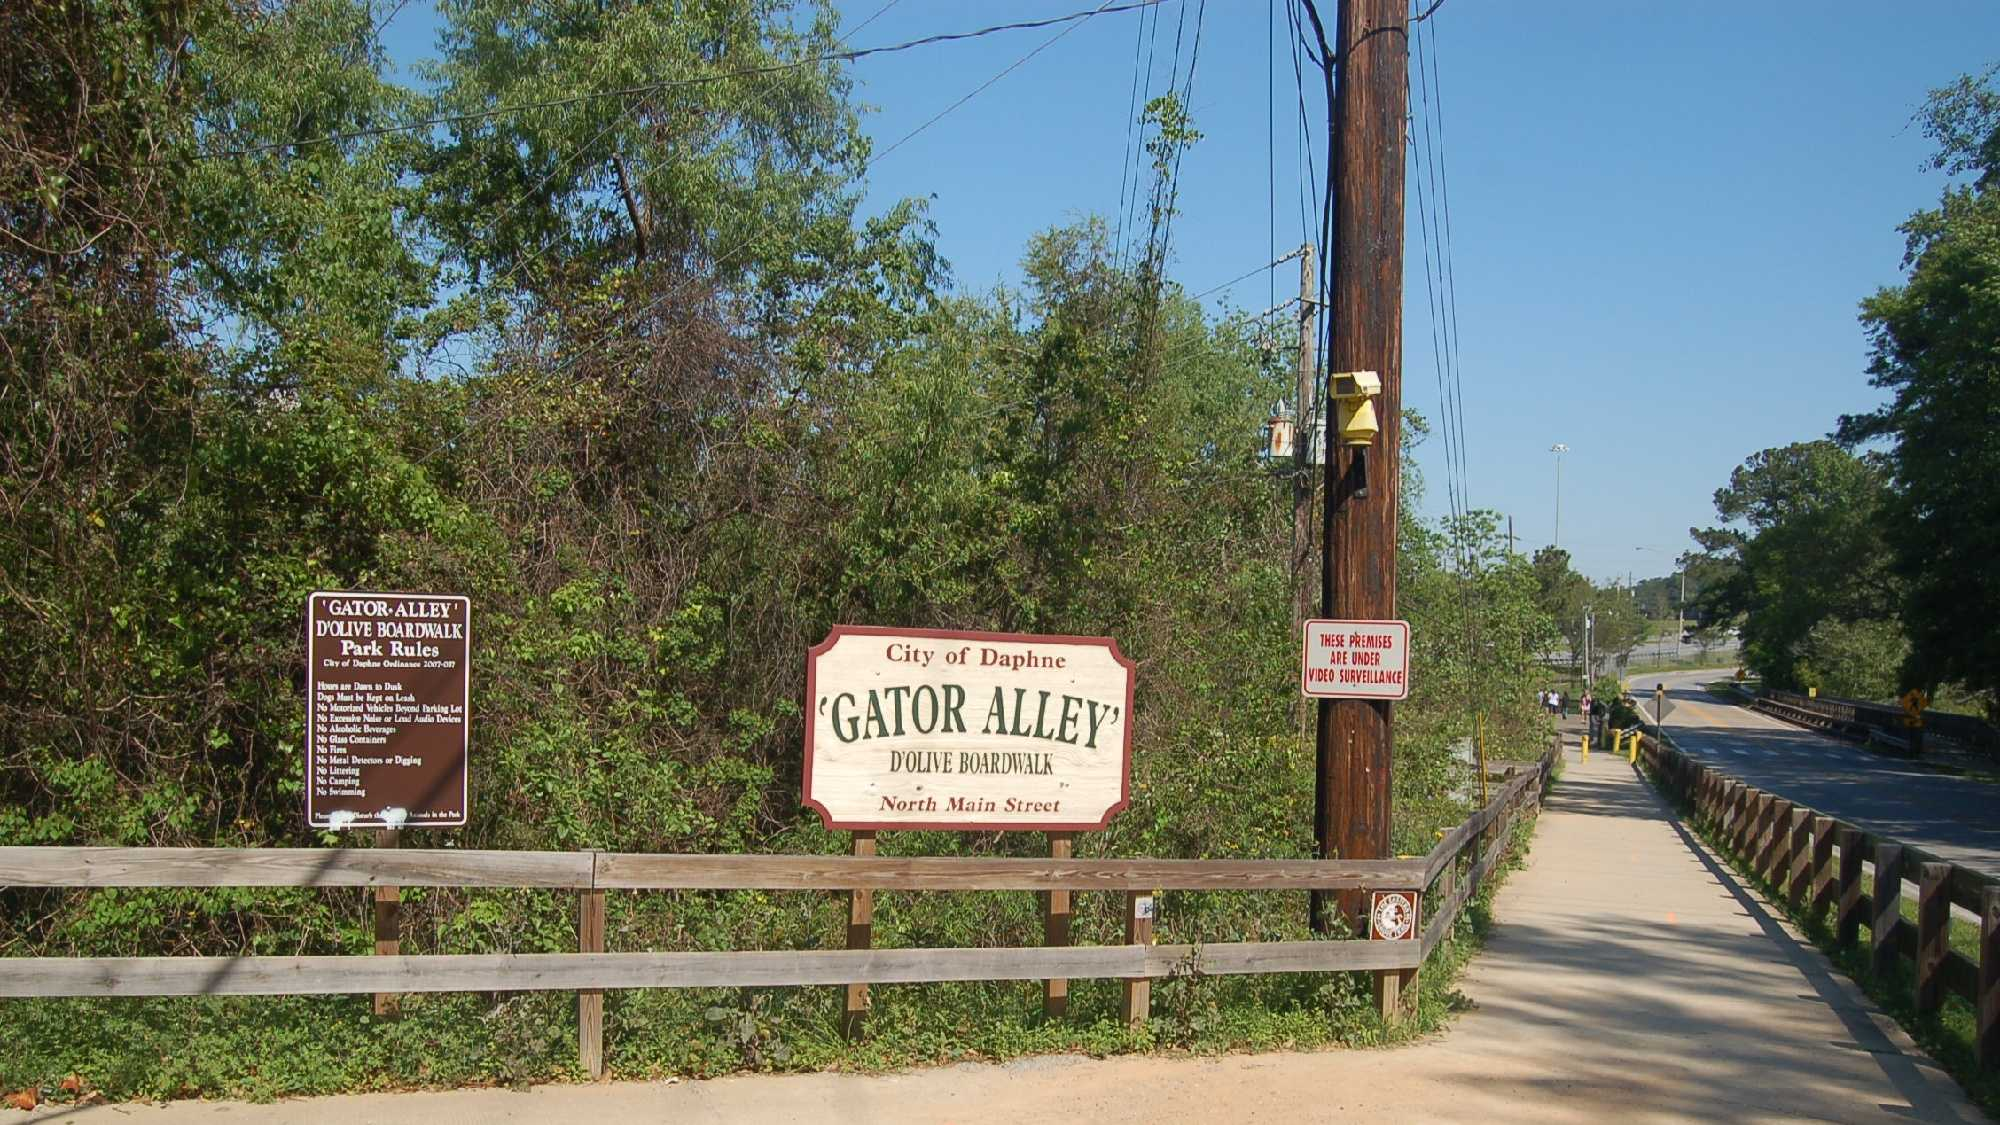 0304_TrailheadToGatorAlley.jpg